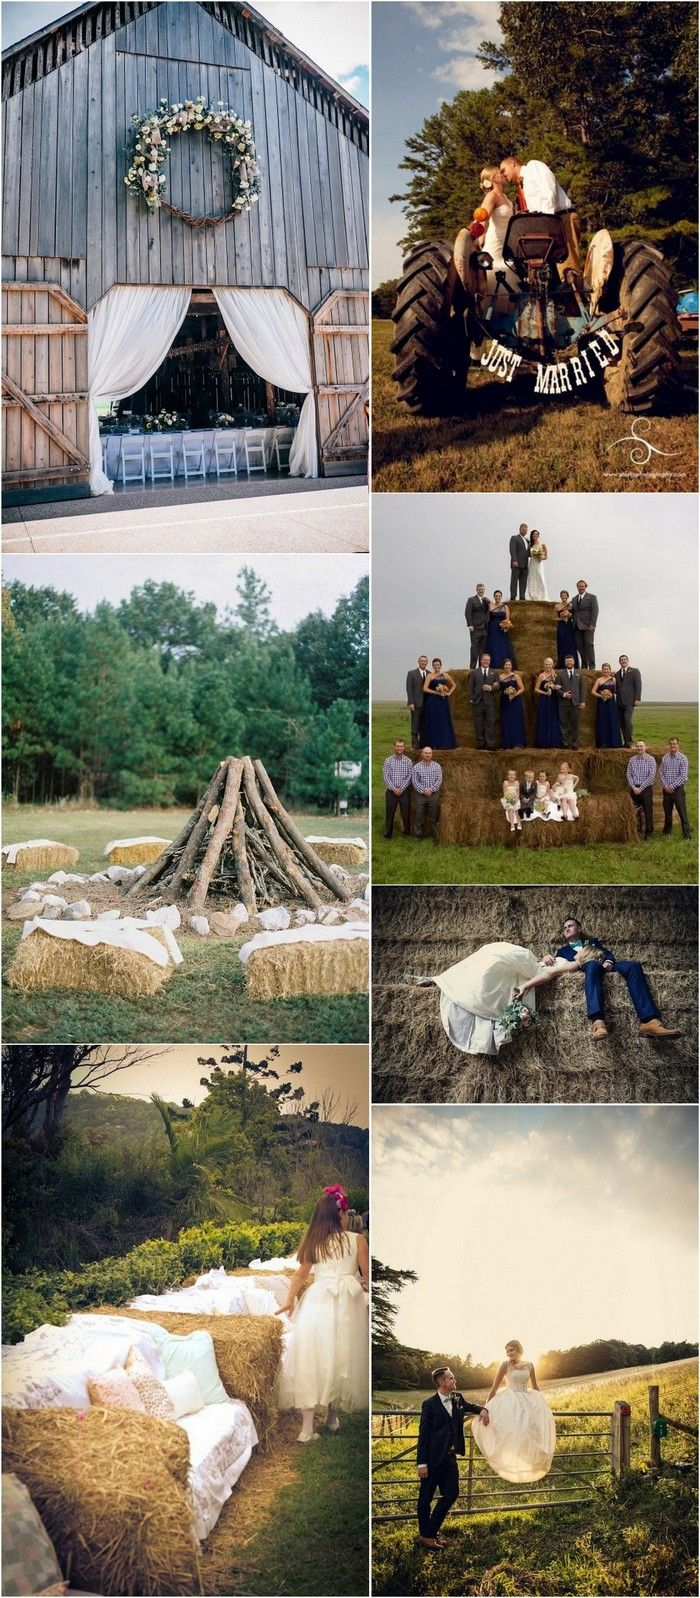 Wedding decorations tent october 2018 Trending Country Rustic Farm Wedding Ideas for   future